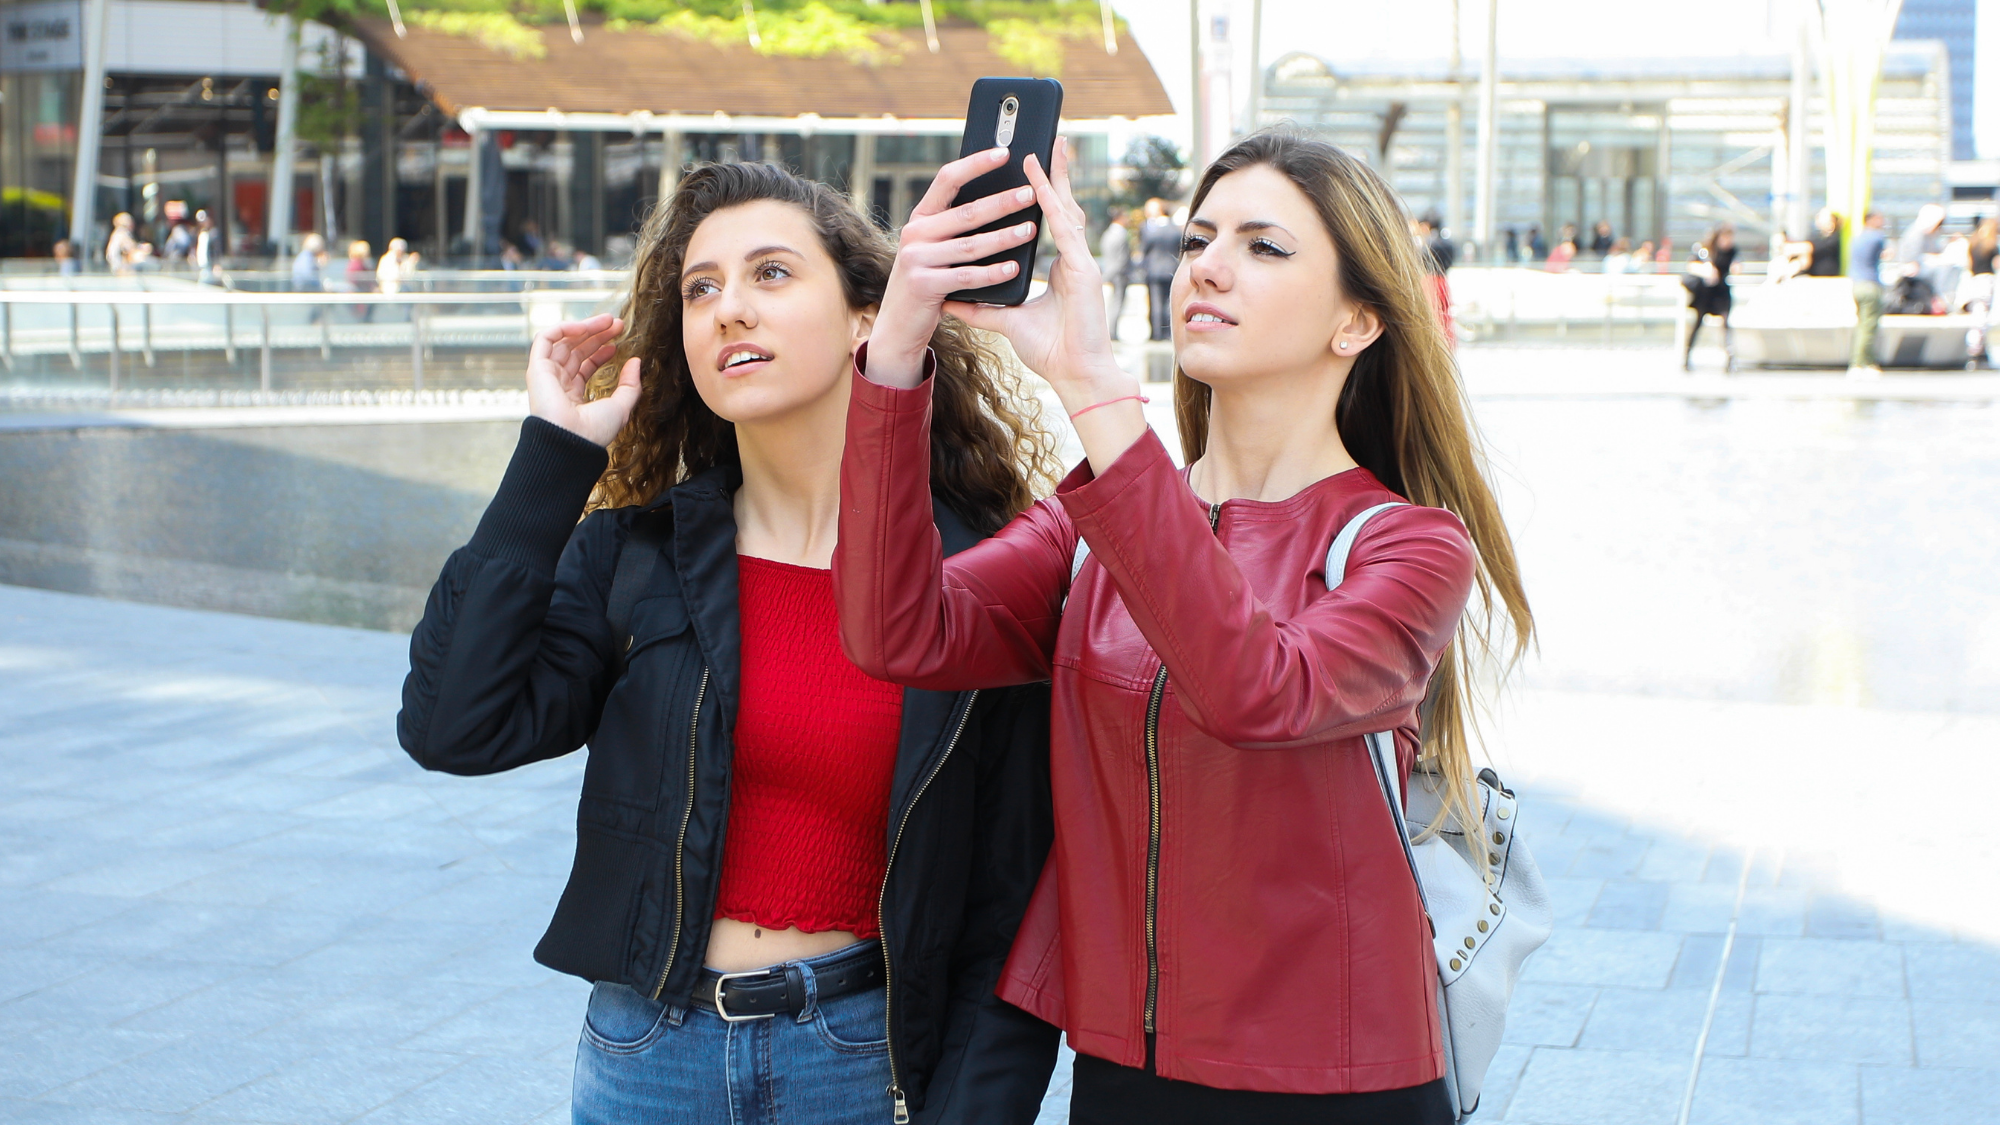 2 young women exploring the city.